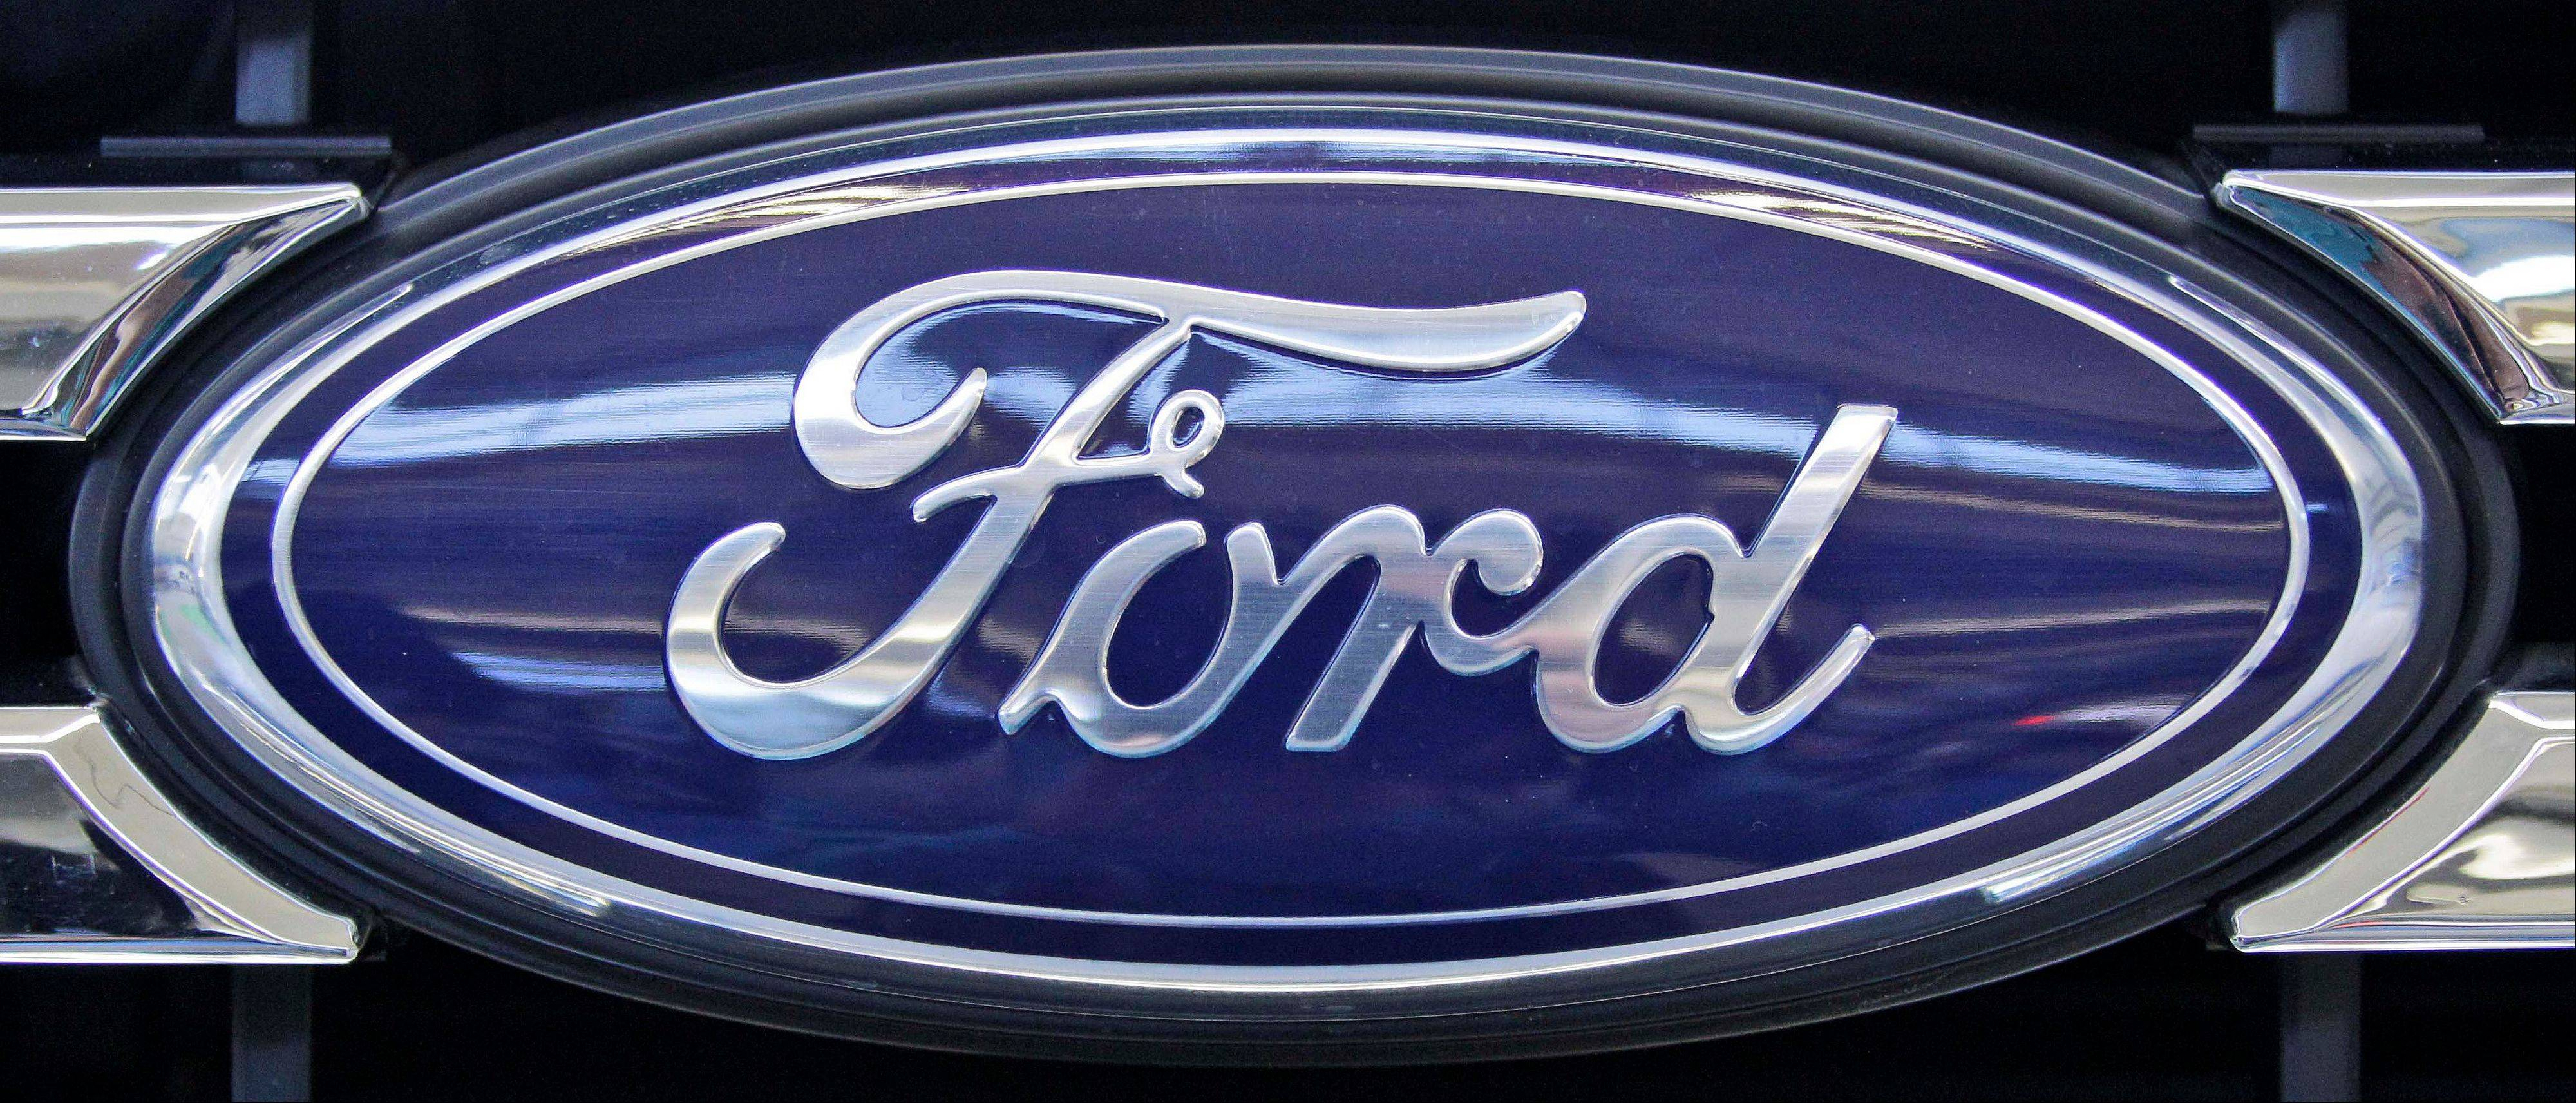 Ford Motor Co. said Thursday that it�s adding 2,000 workers to the Missouri plant that makes the F-150 pickup because of surging U.S. truck demand. The company plans to add a shift with 900 workers in the third quarter of this year to make pickups. That�s in addition to the 1,100 workers Ford will hire to make the new Transit van. Those workers will start in the fourth quarter.